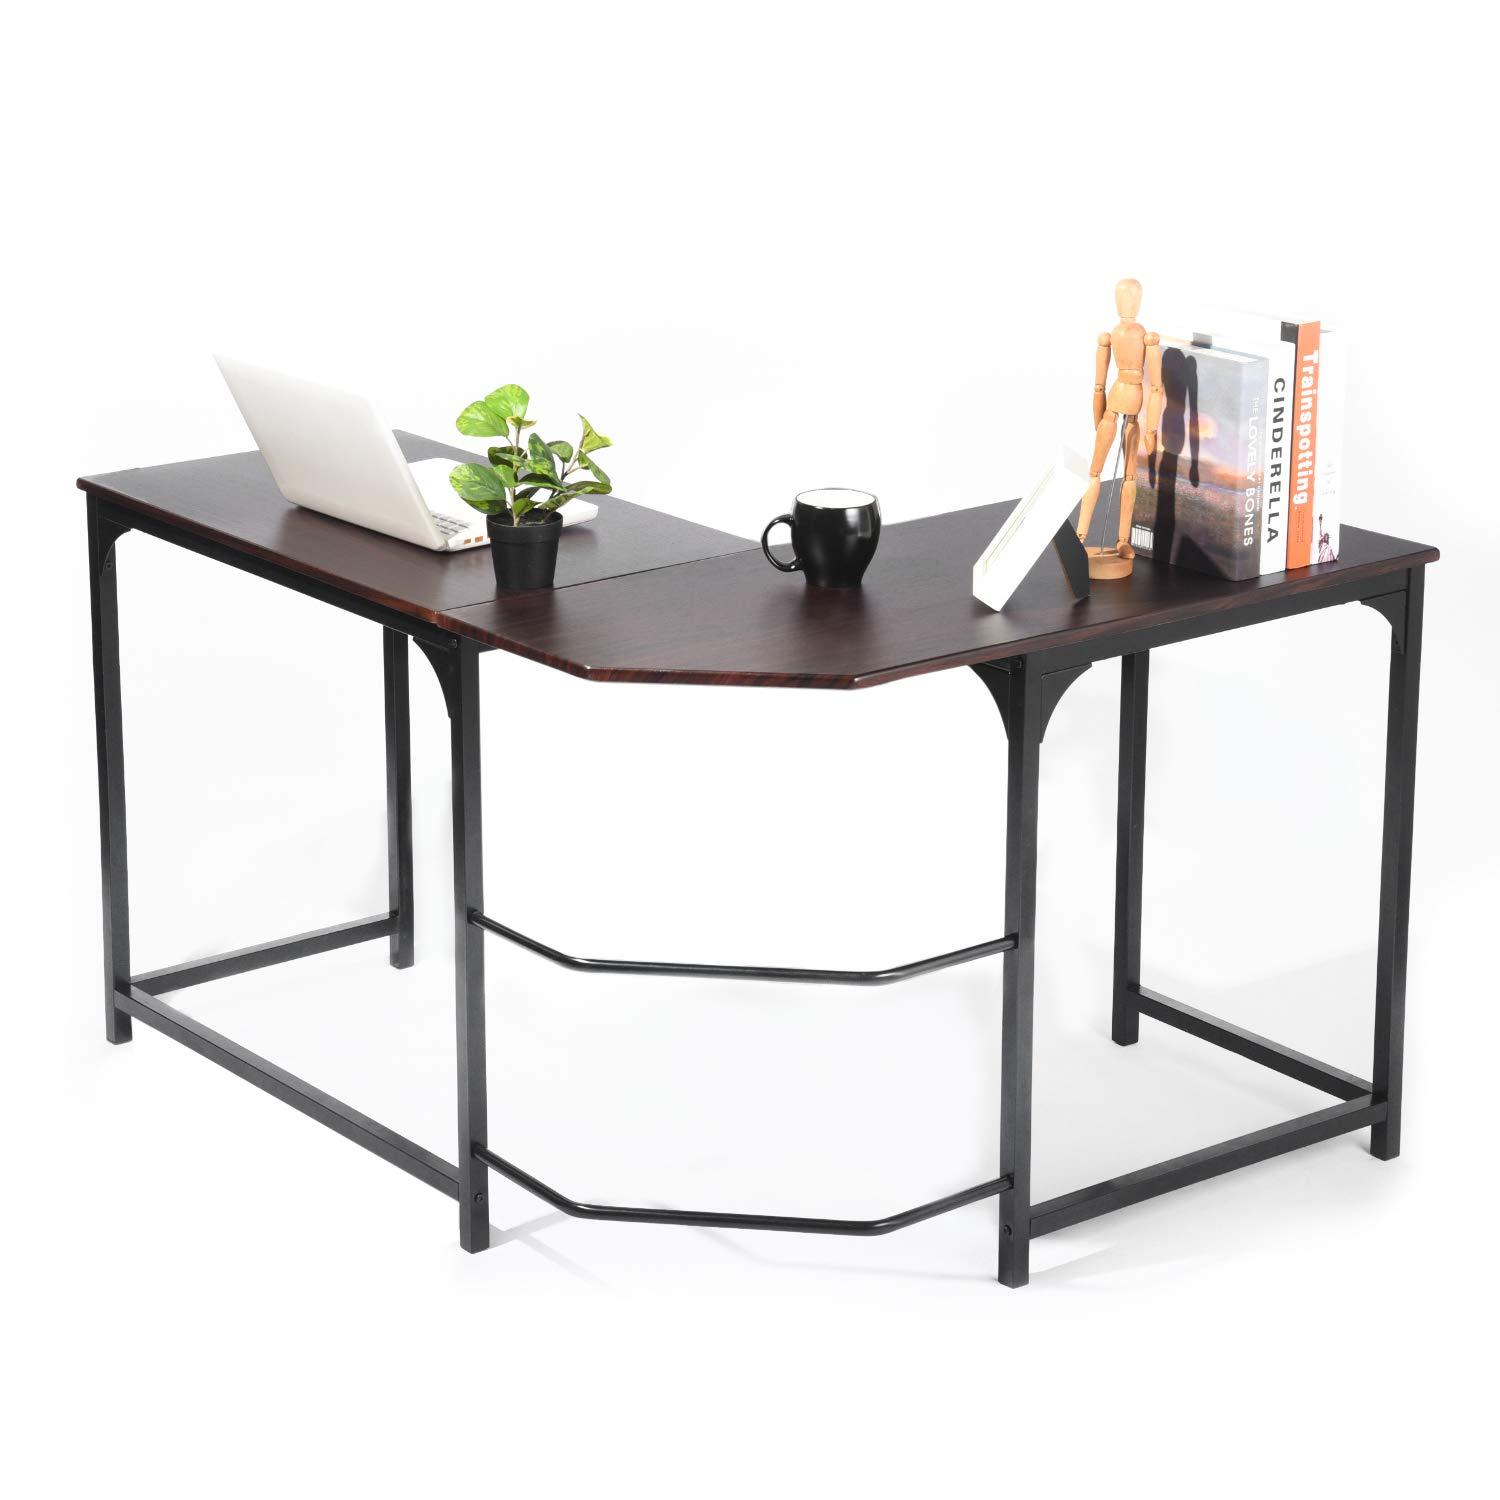 GreenForest L Shaped Desk Home Office Corner Computer Desk PC Laptop Study Table Workstation, Espresso